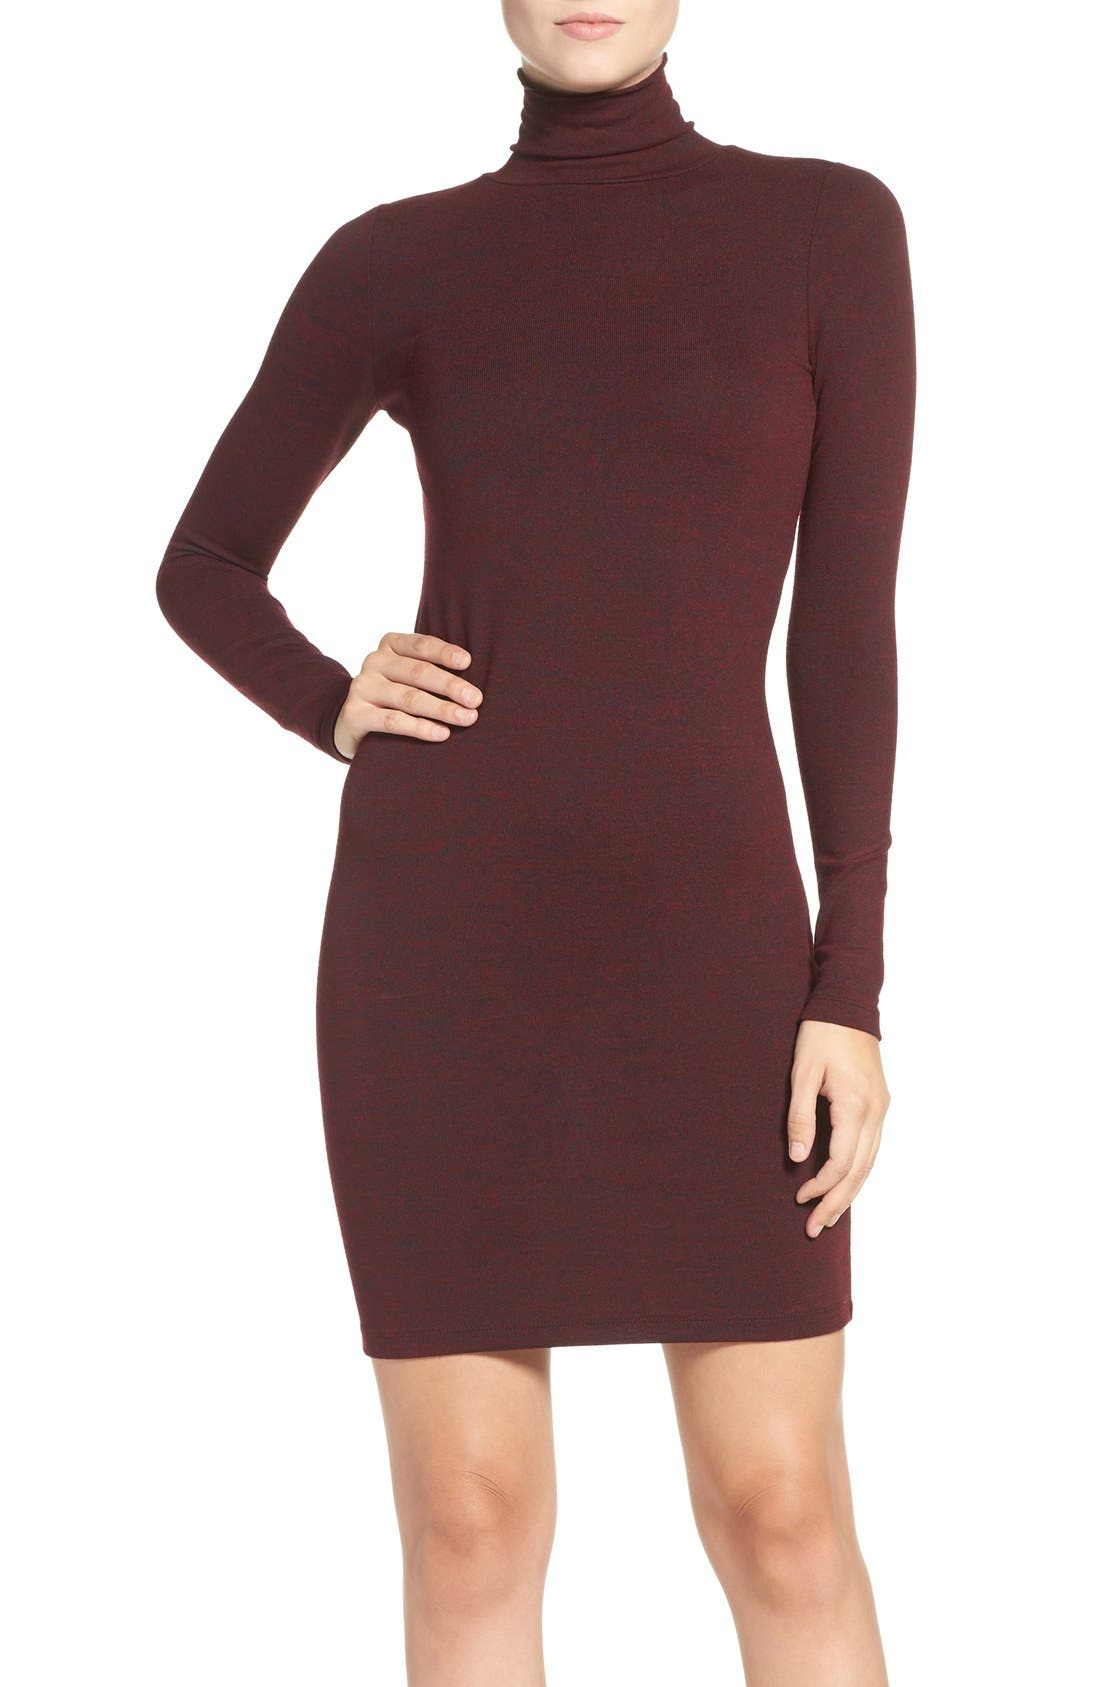 Main Image - French Connection 'Sweeter' Turtleneck Sweater Dress